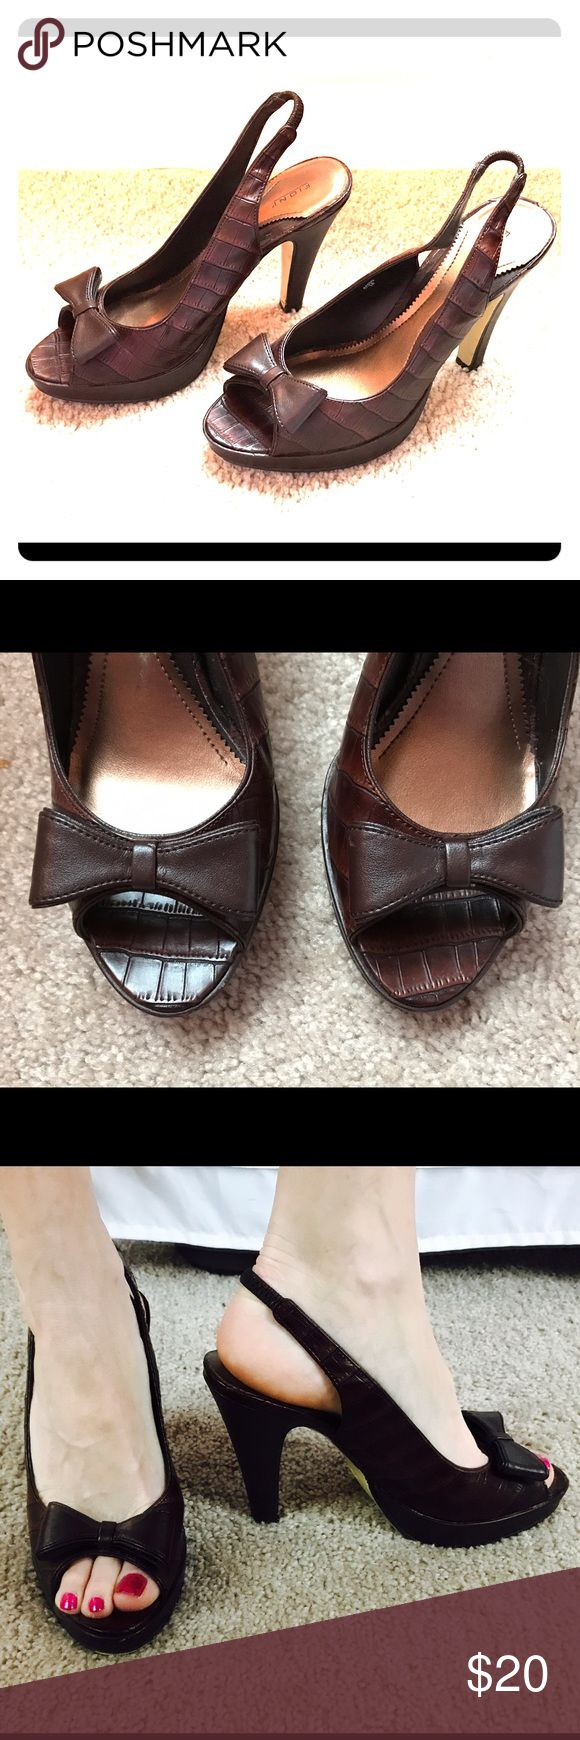 """Brown bow alligator print heels Adorable Fiona Brown Leather looking alligator print heels with bows. Seem true to size. 4.5"""" heel but on a platform in the front, so doesn't feel that tall! Fioni Shoes Heels"""